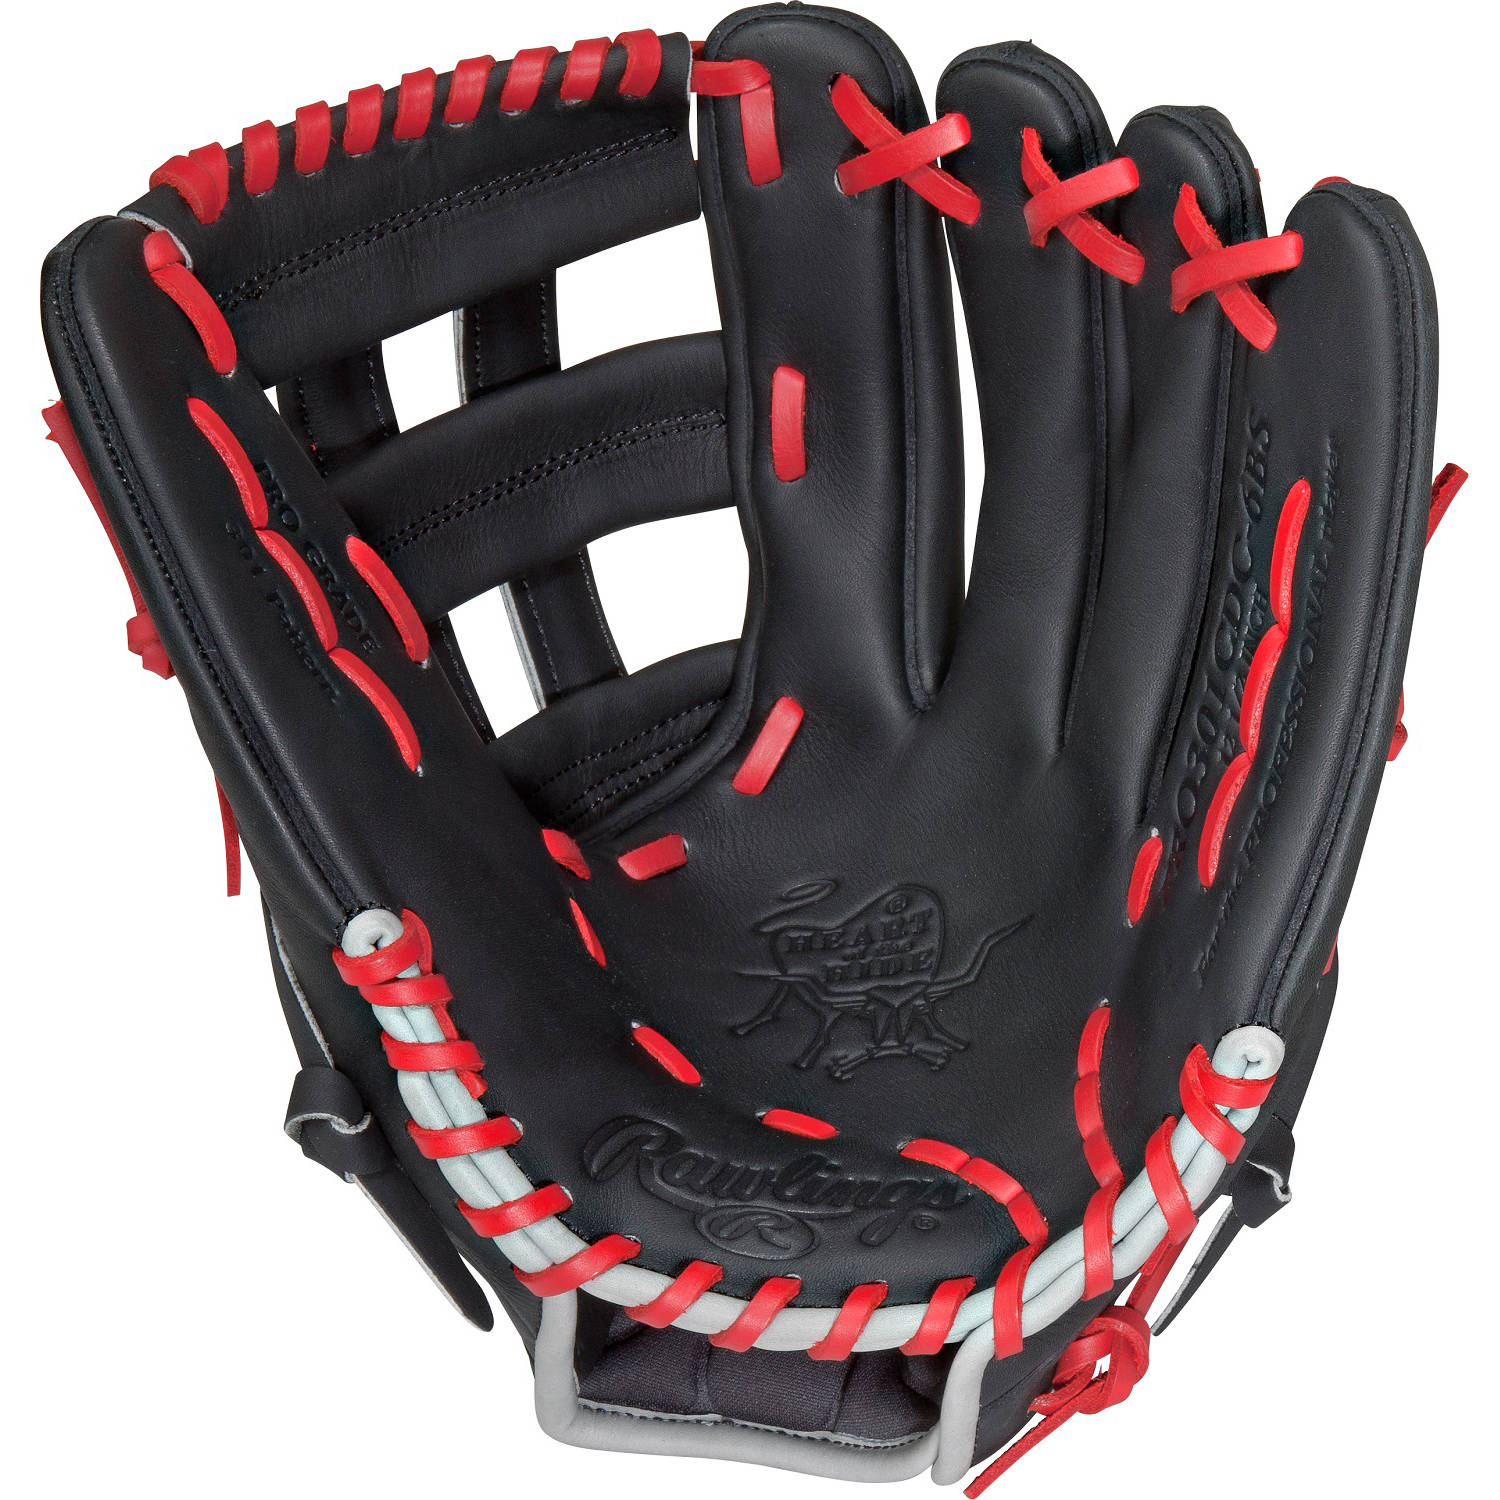 "Rawlings 12.5"" Heart of the Hide Series Baseball Glove, Right Hand Throw"